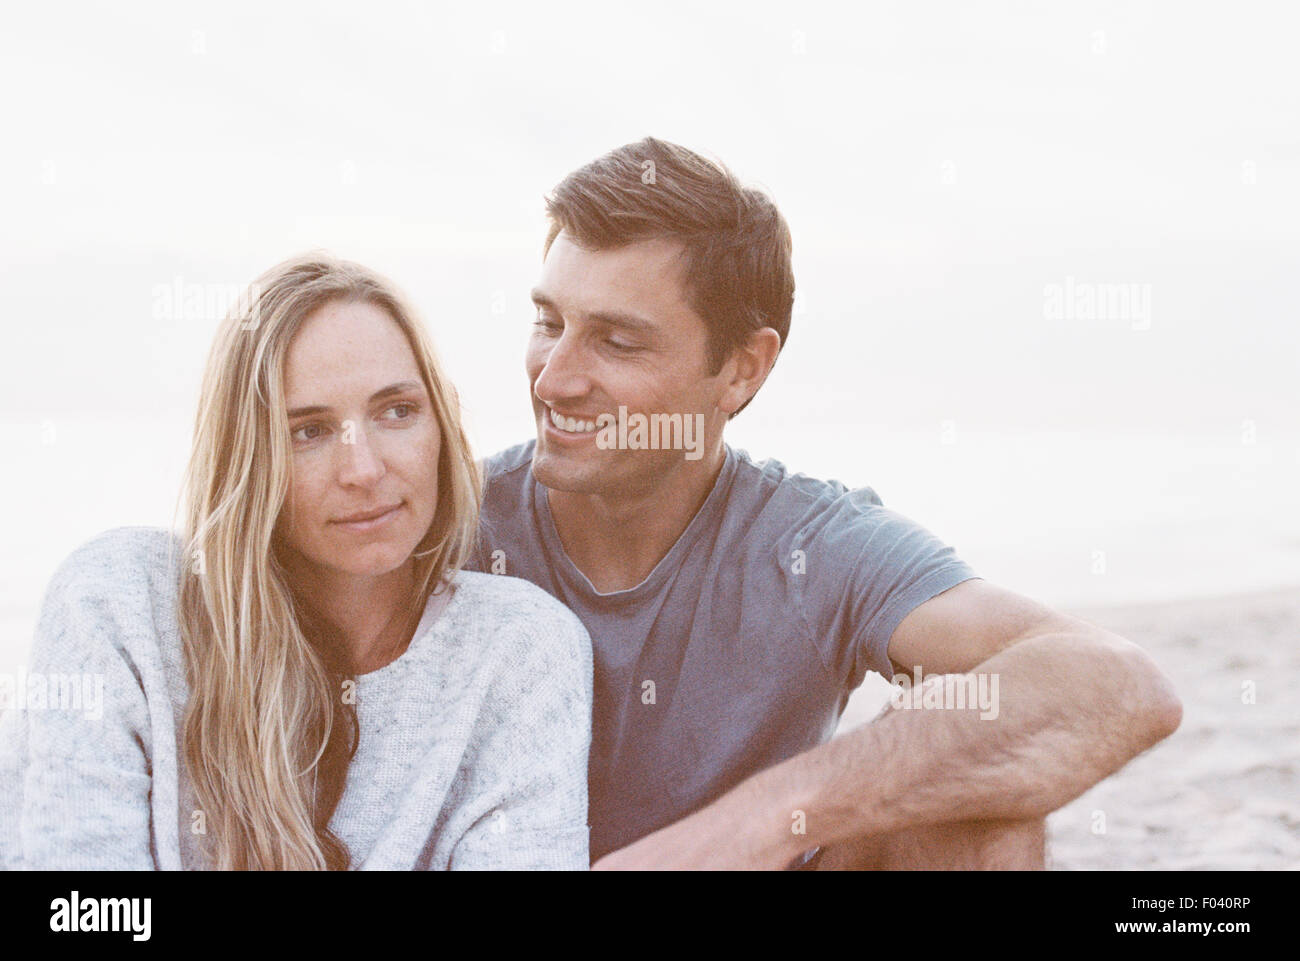 A couple sitting close on a beach, a man and woman with their arms around each other and heads together. - Stock Image